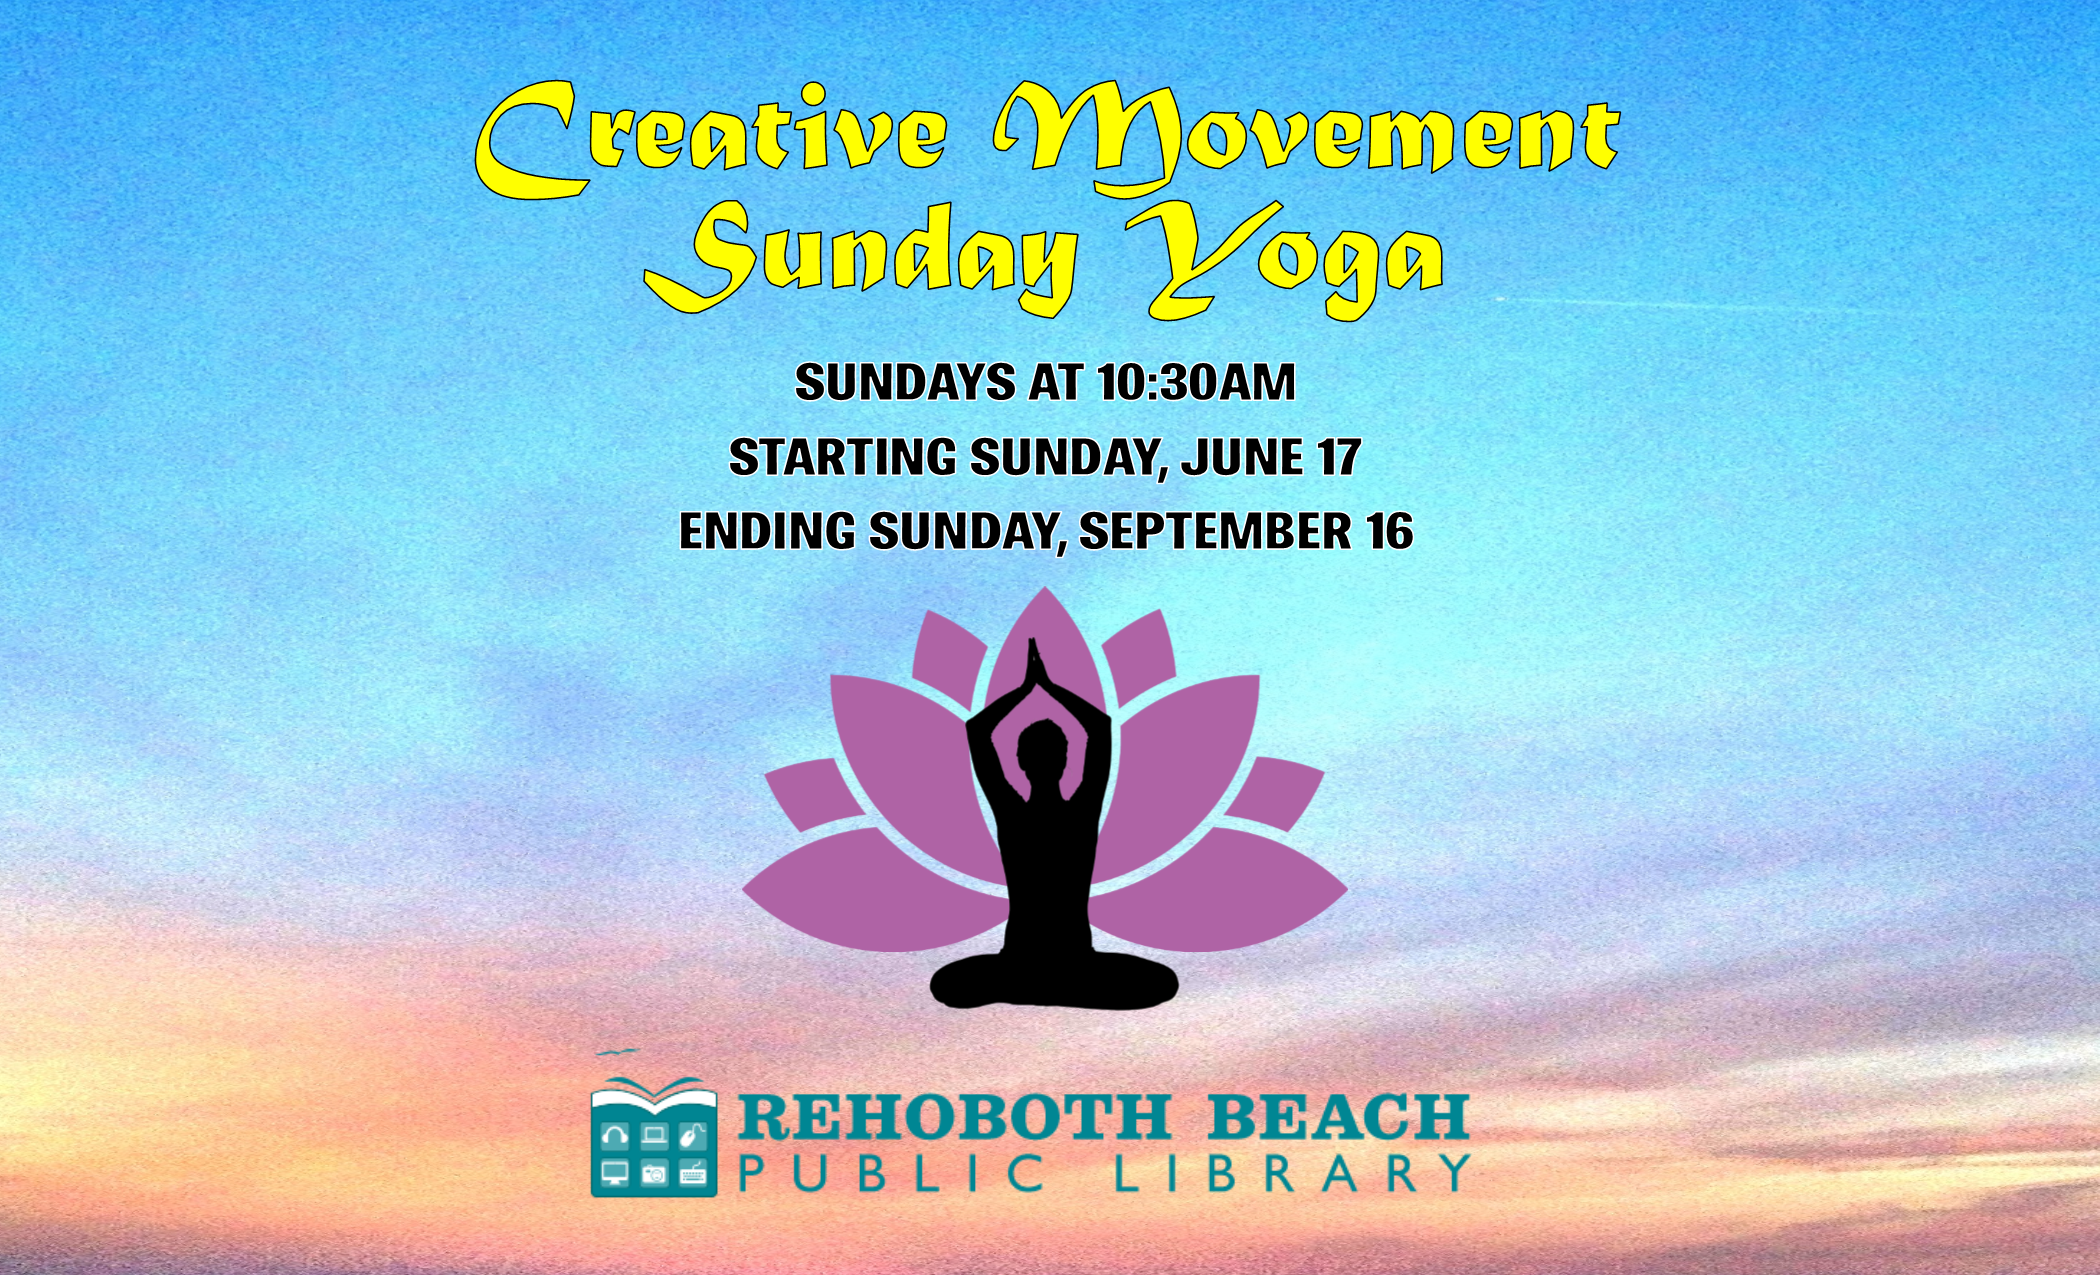 Creative Movement Sunday Yoga